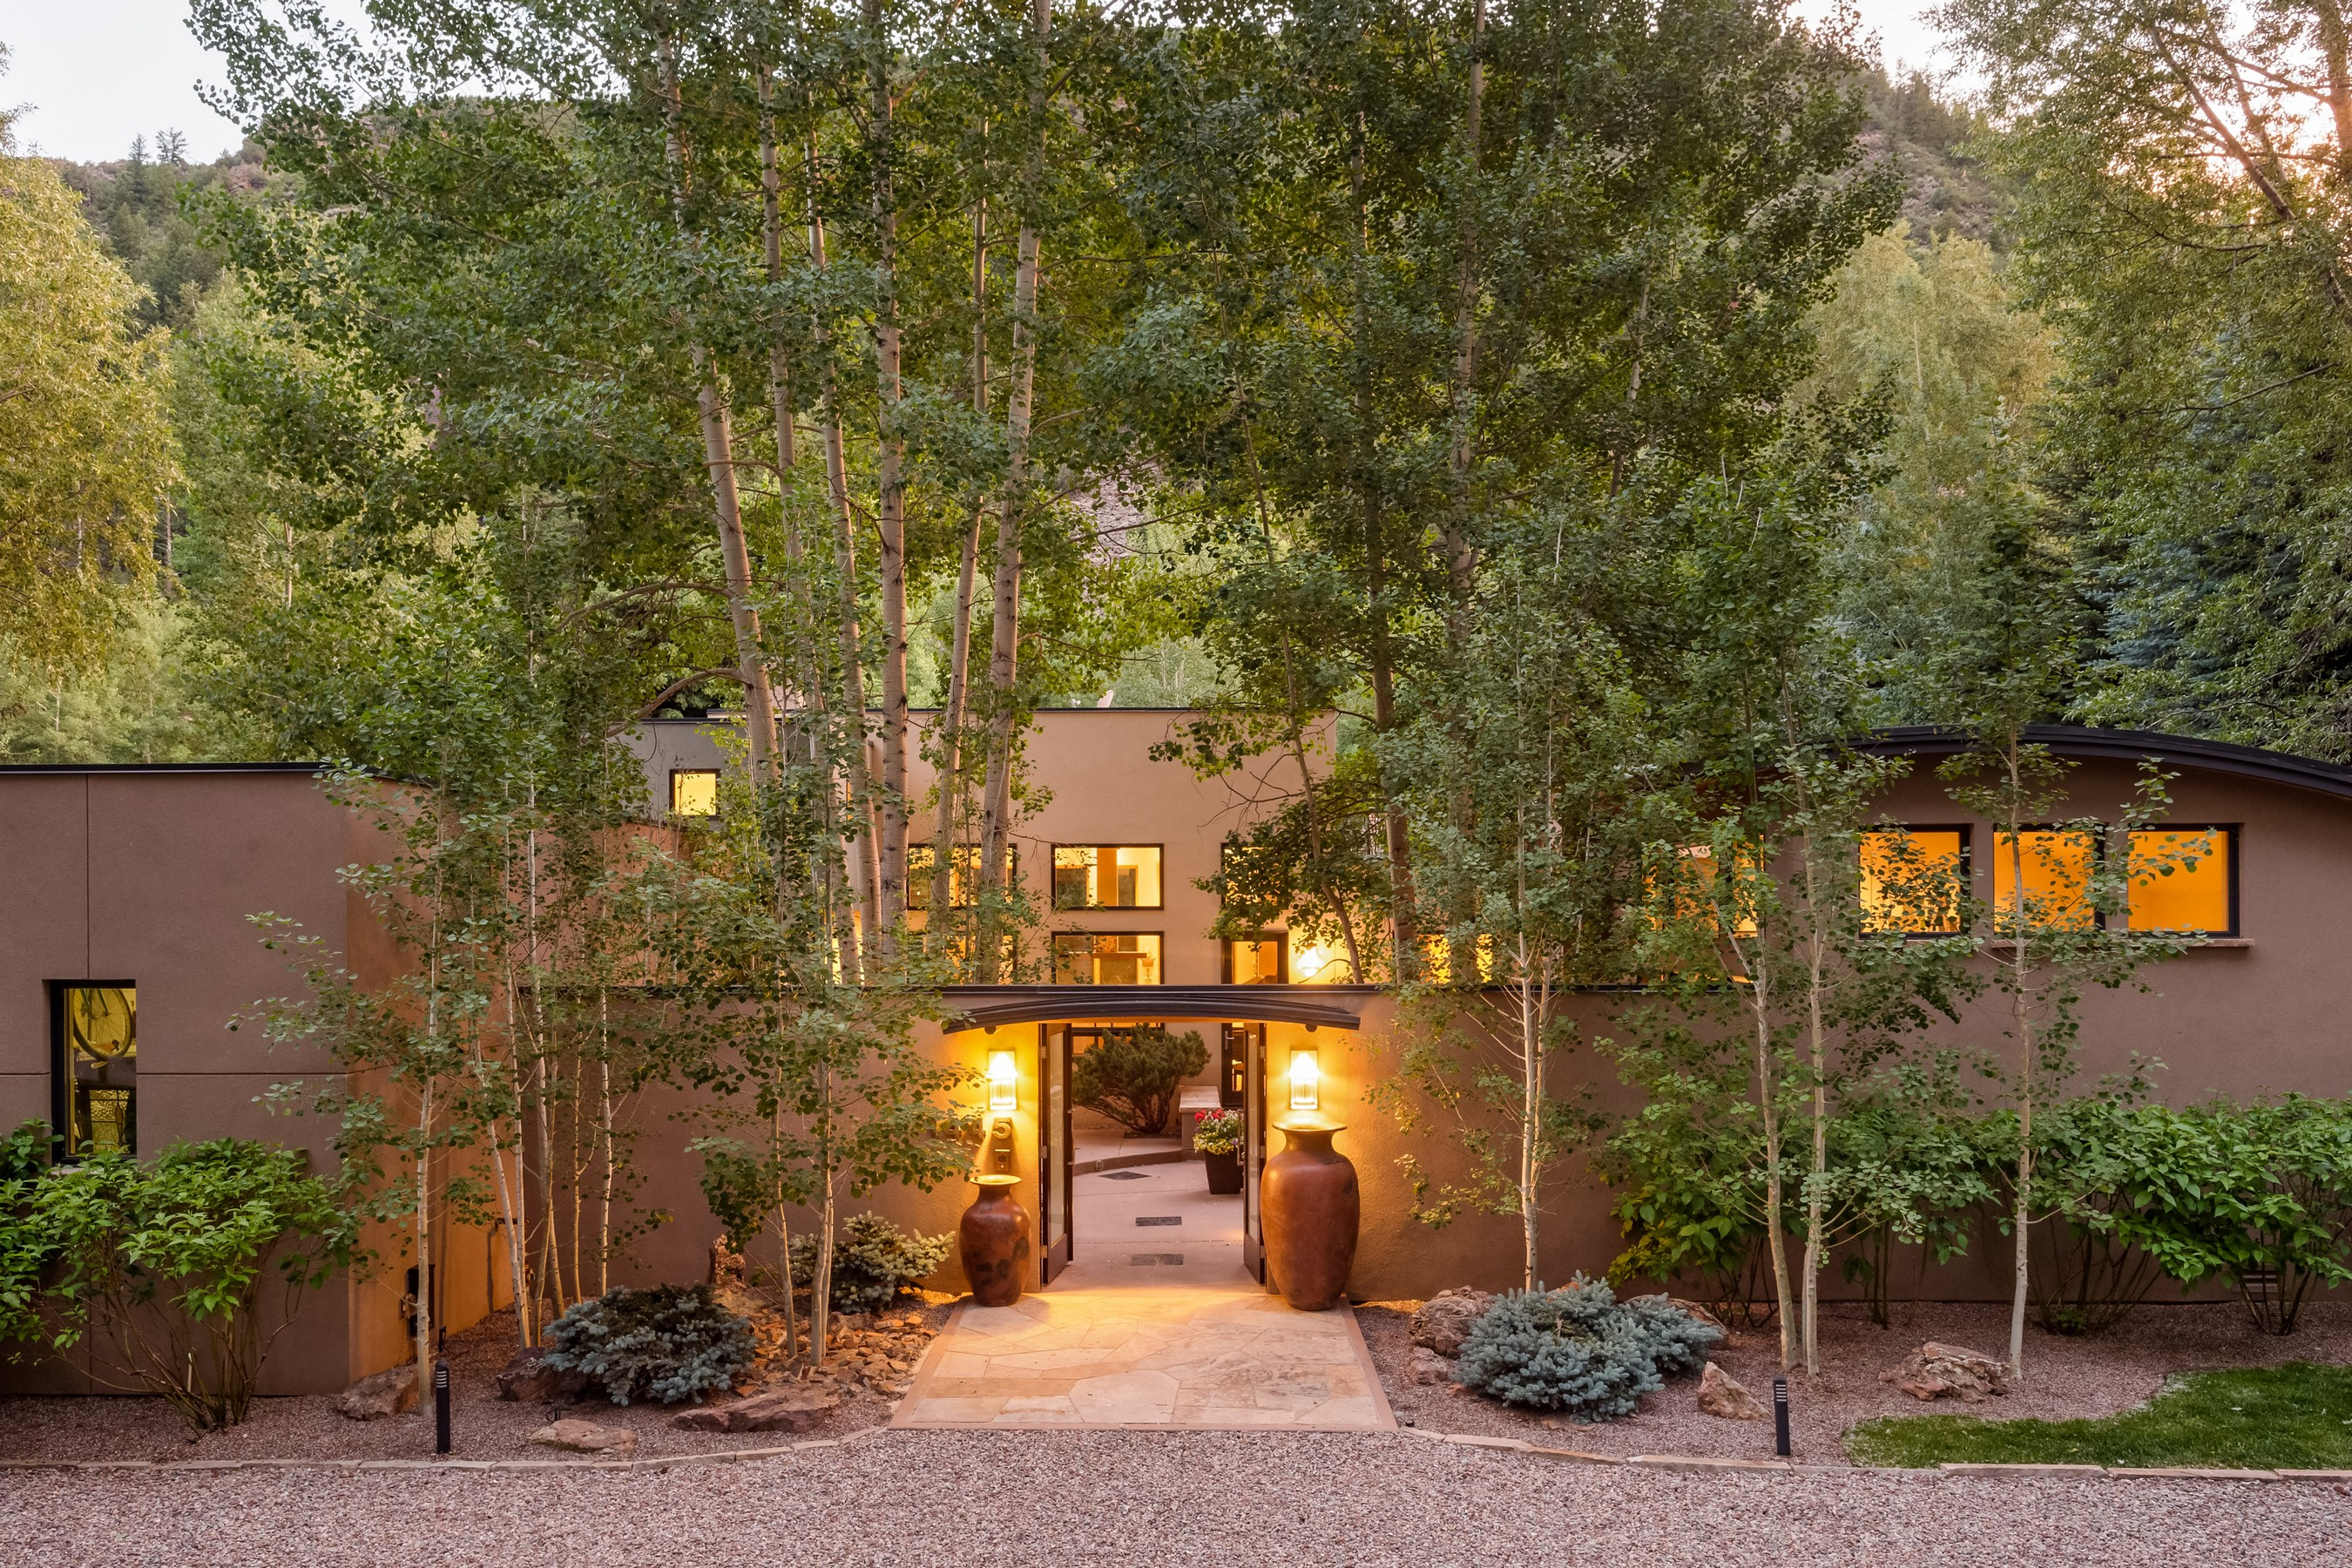 Single Family Home for Sale at Contemporary Home & Guest House in West Aspen 1445 Red Butte Drive West Aspen, Aspen, Colorado, 81611 United States